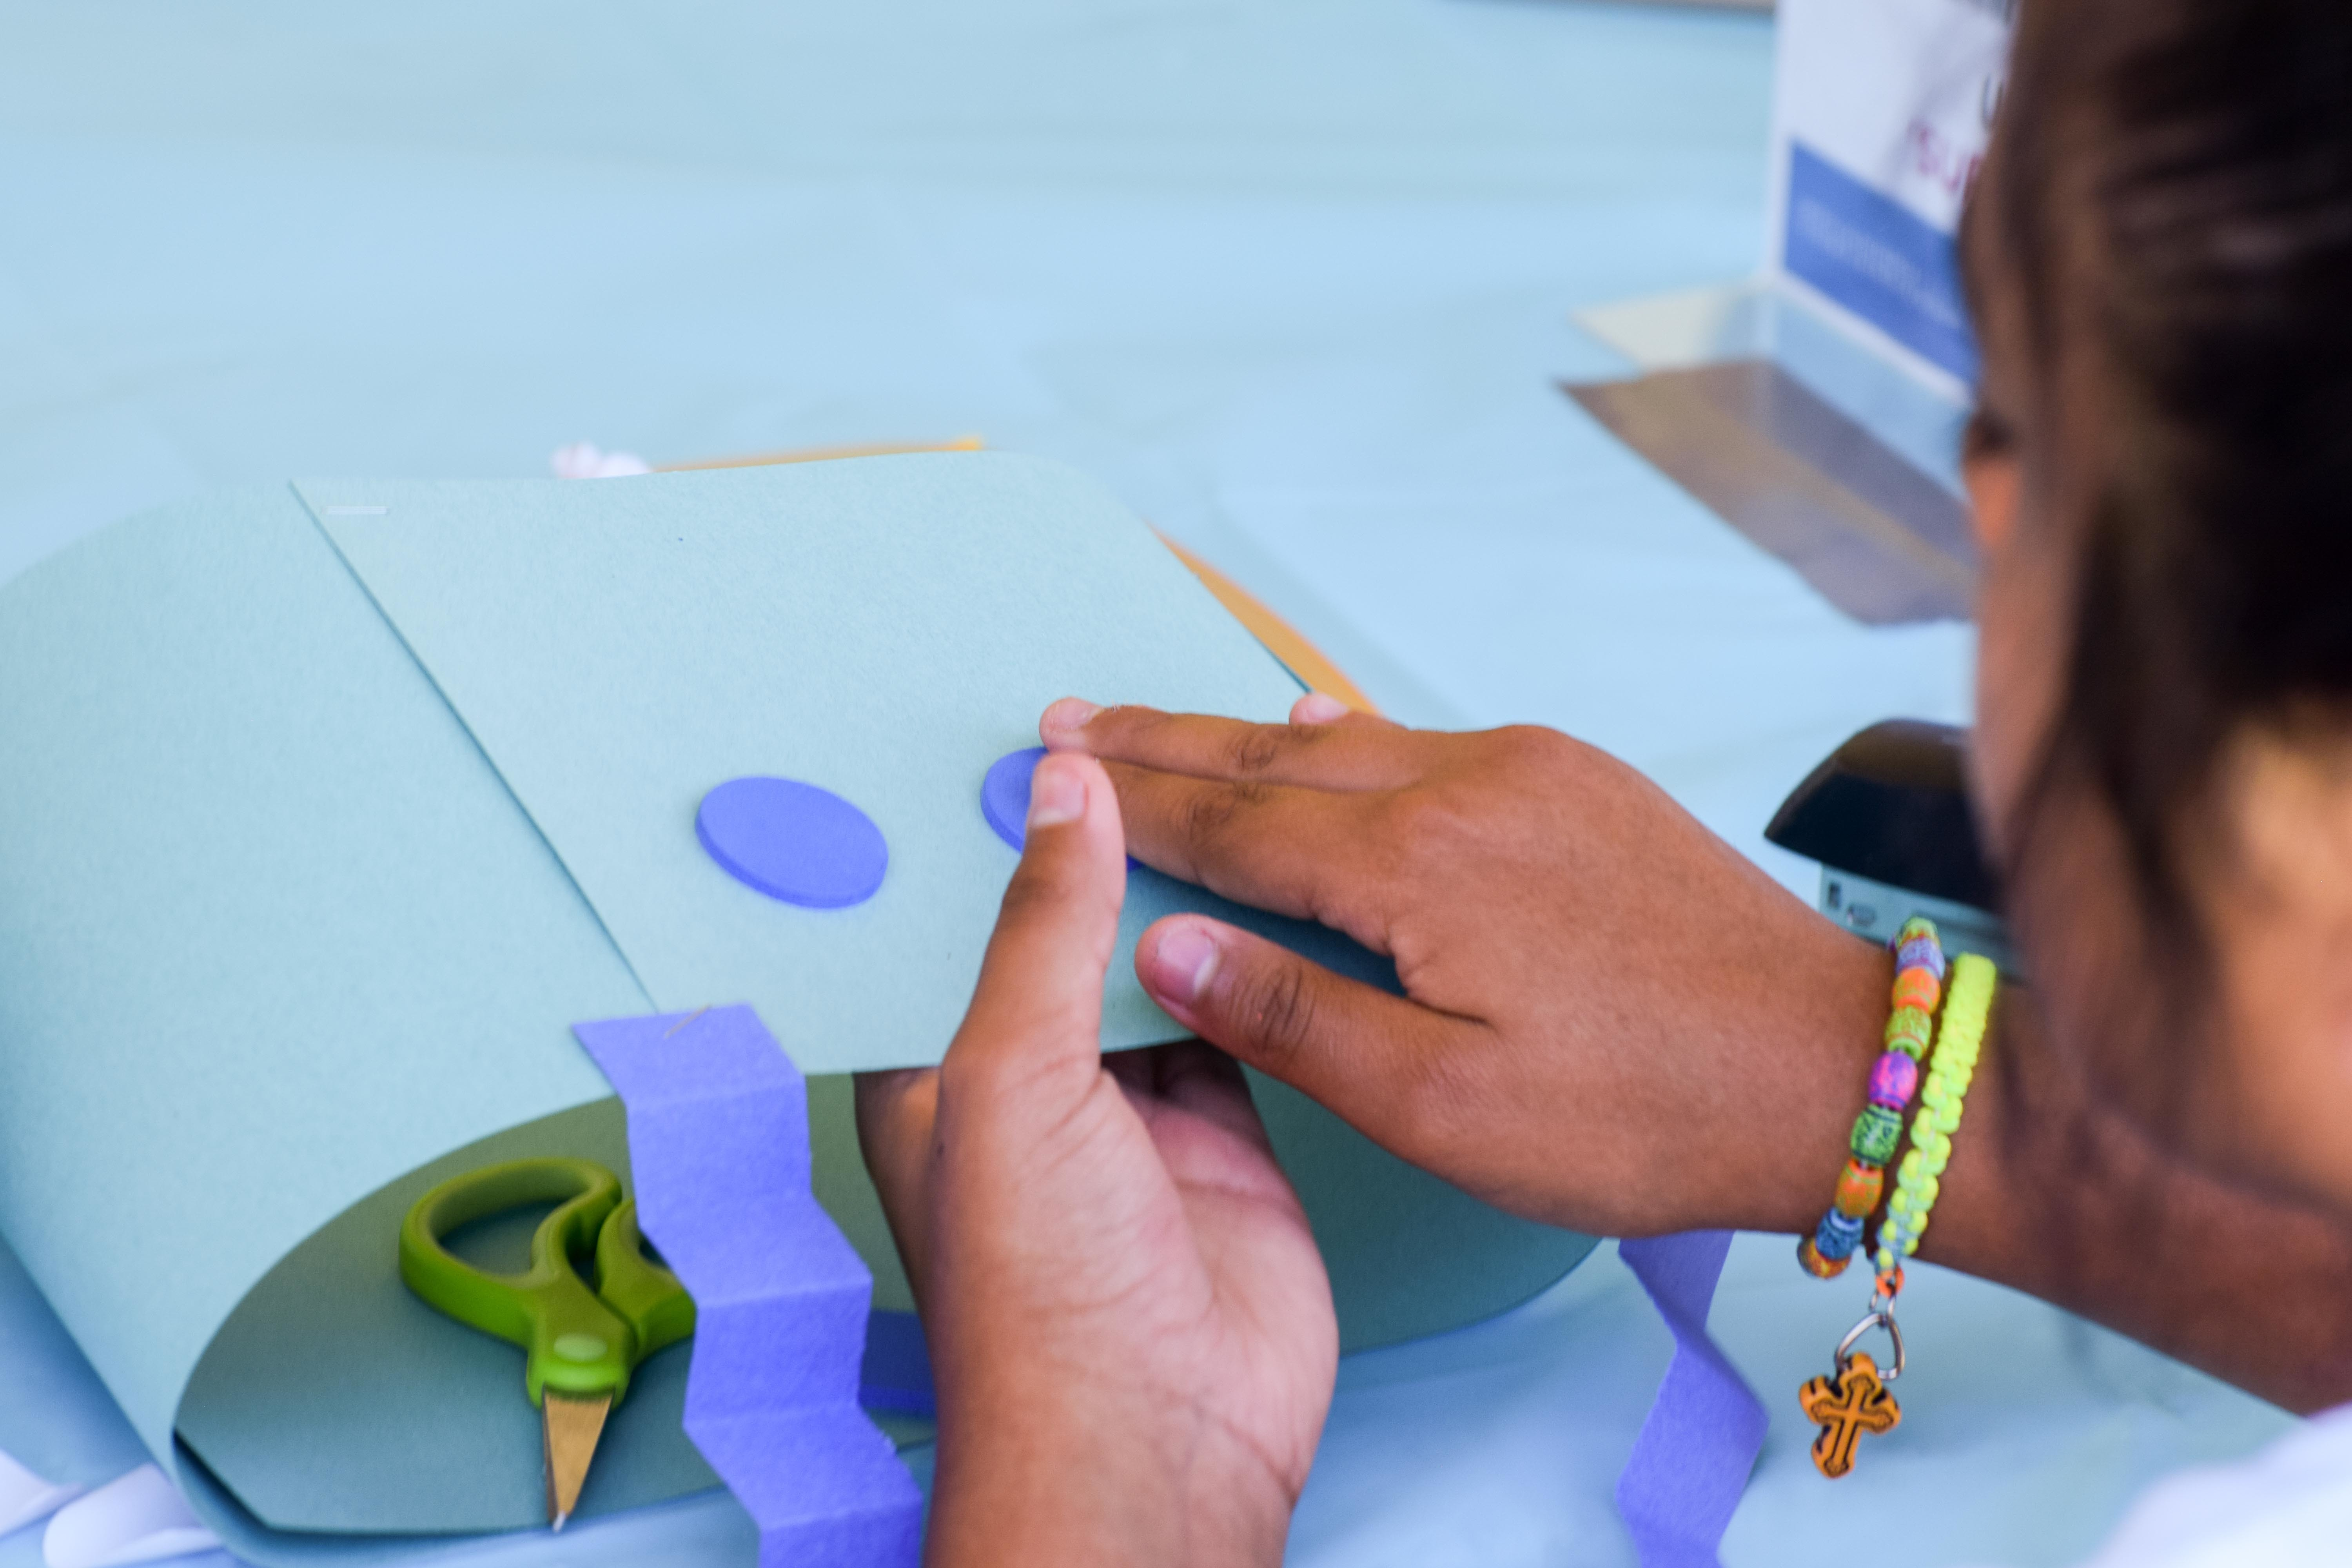 A detail photo depicts the hands of a child working on an art project using scissors and construction paper